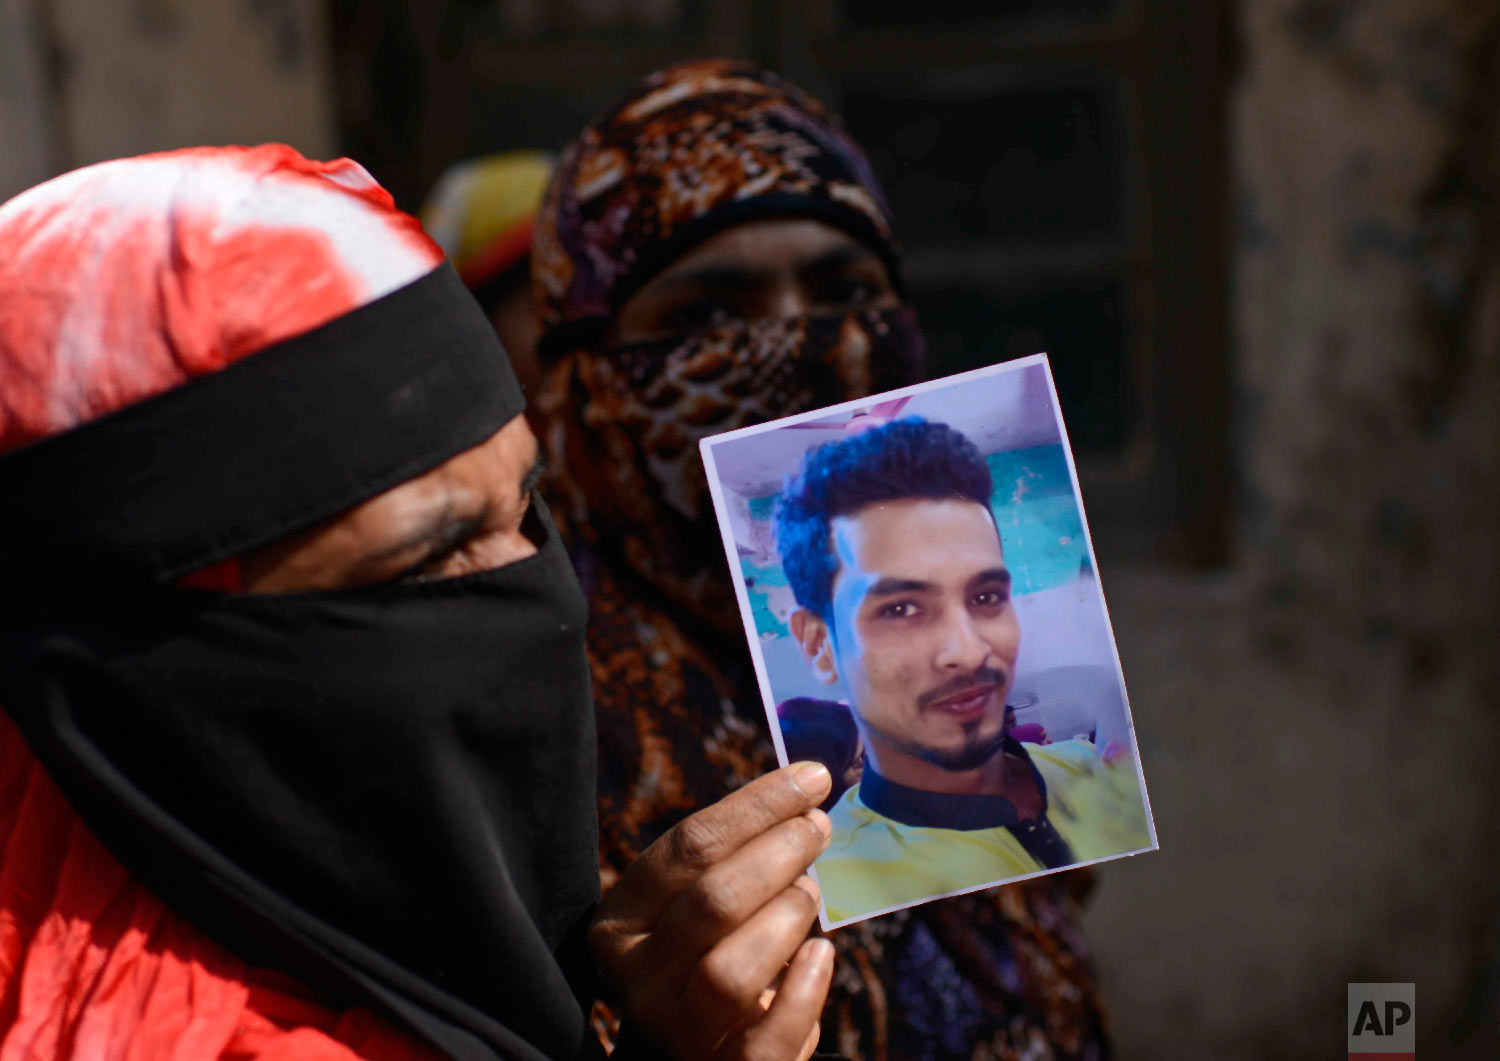 A woman displays a photograph of a relative who died in a fire, outside a morgue in Dhaka, Bangladesh, Thursday, Feb. 21, 2019. (AP Photo/Mahmud Hossain Opu)